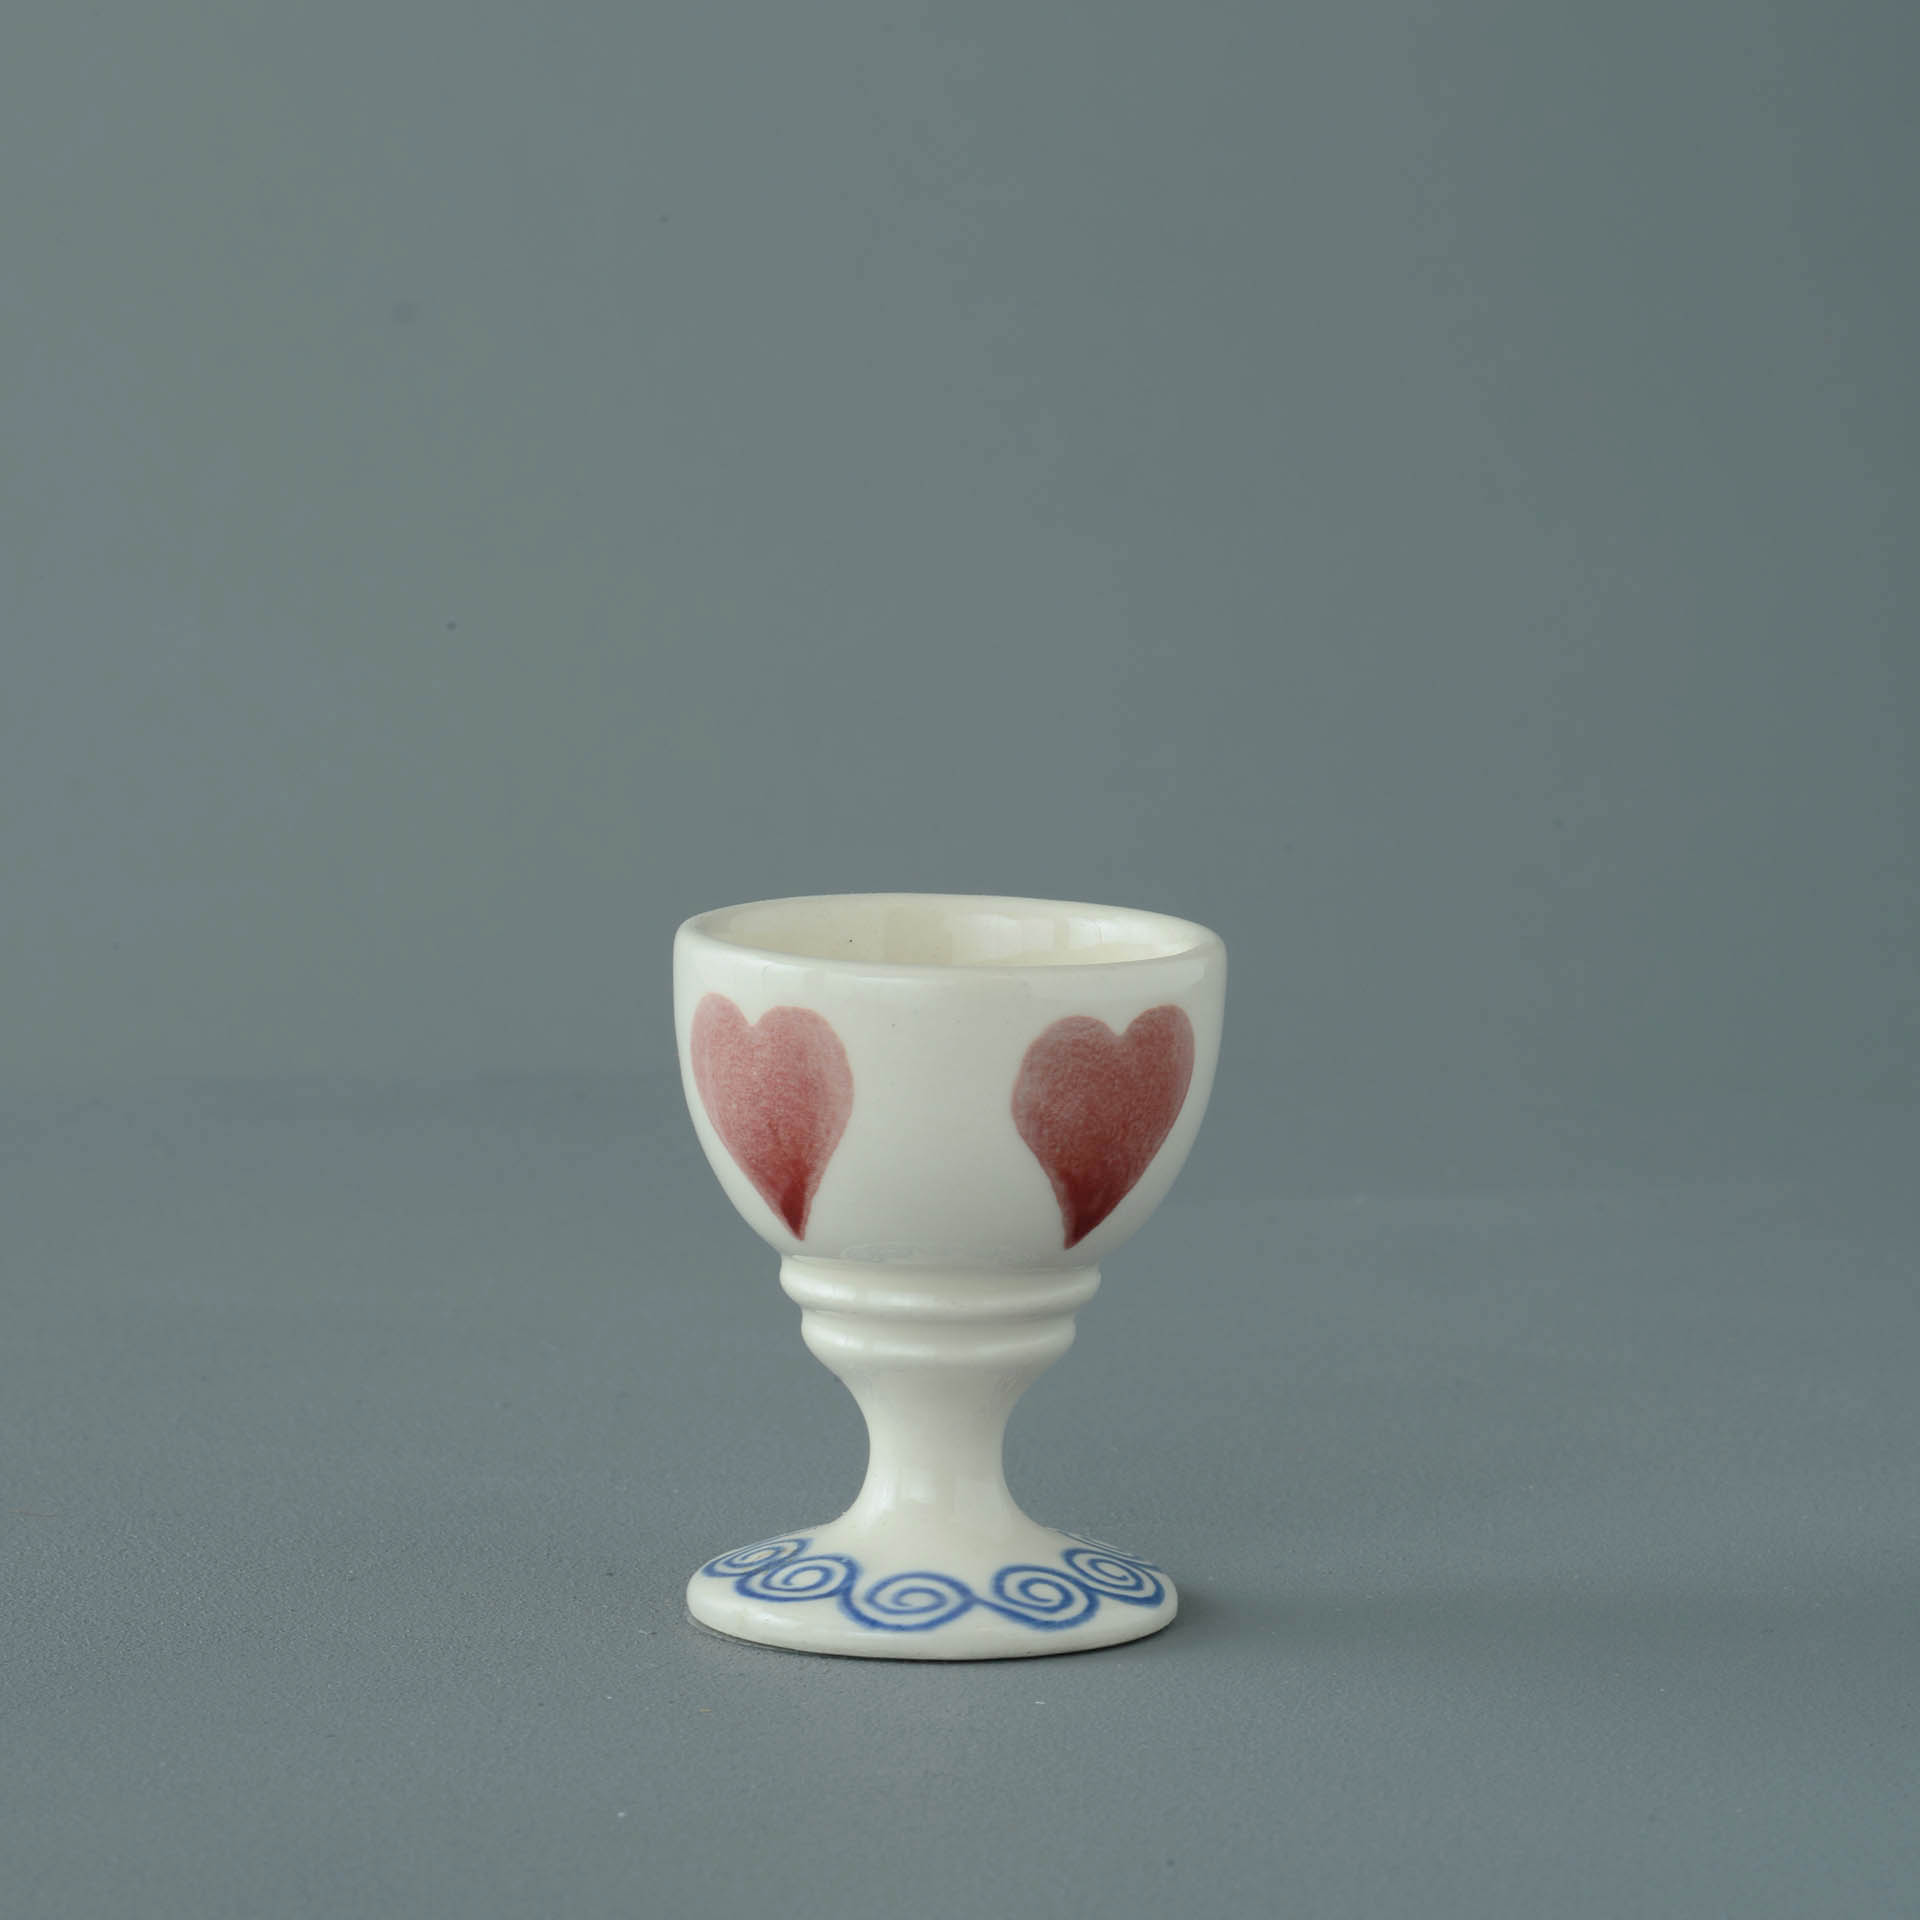 Hearts Egg cup 6.3 x 5.2cm